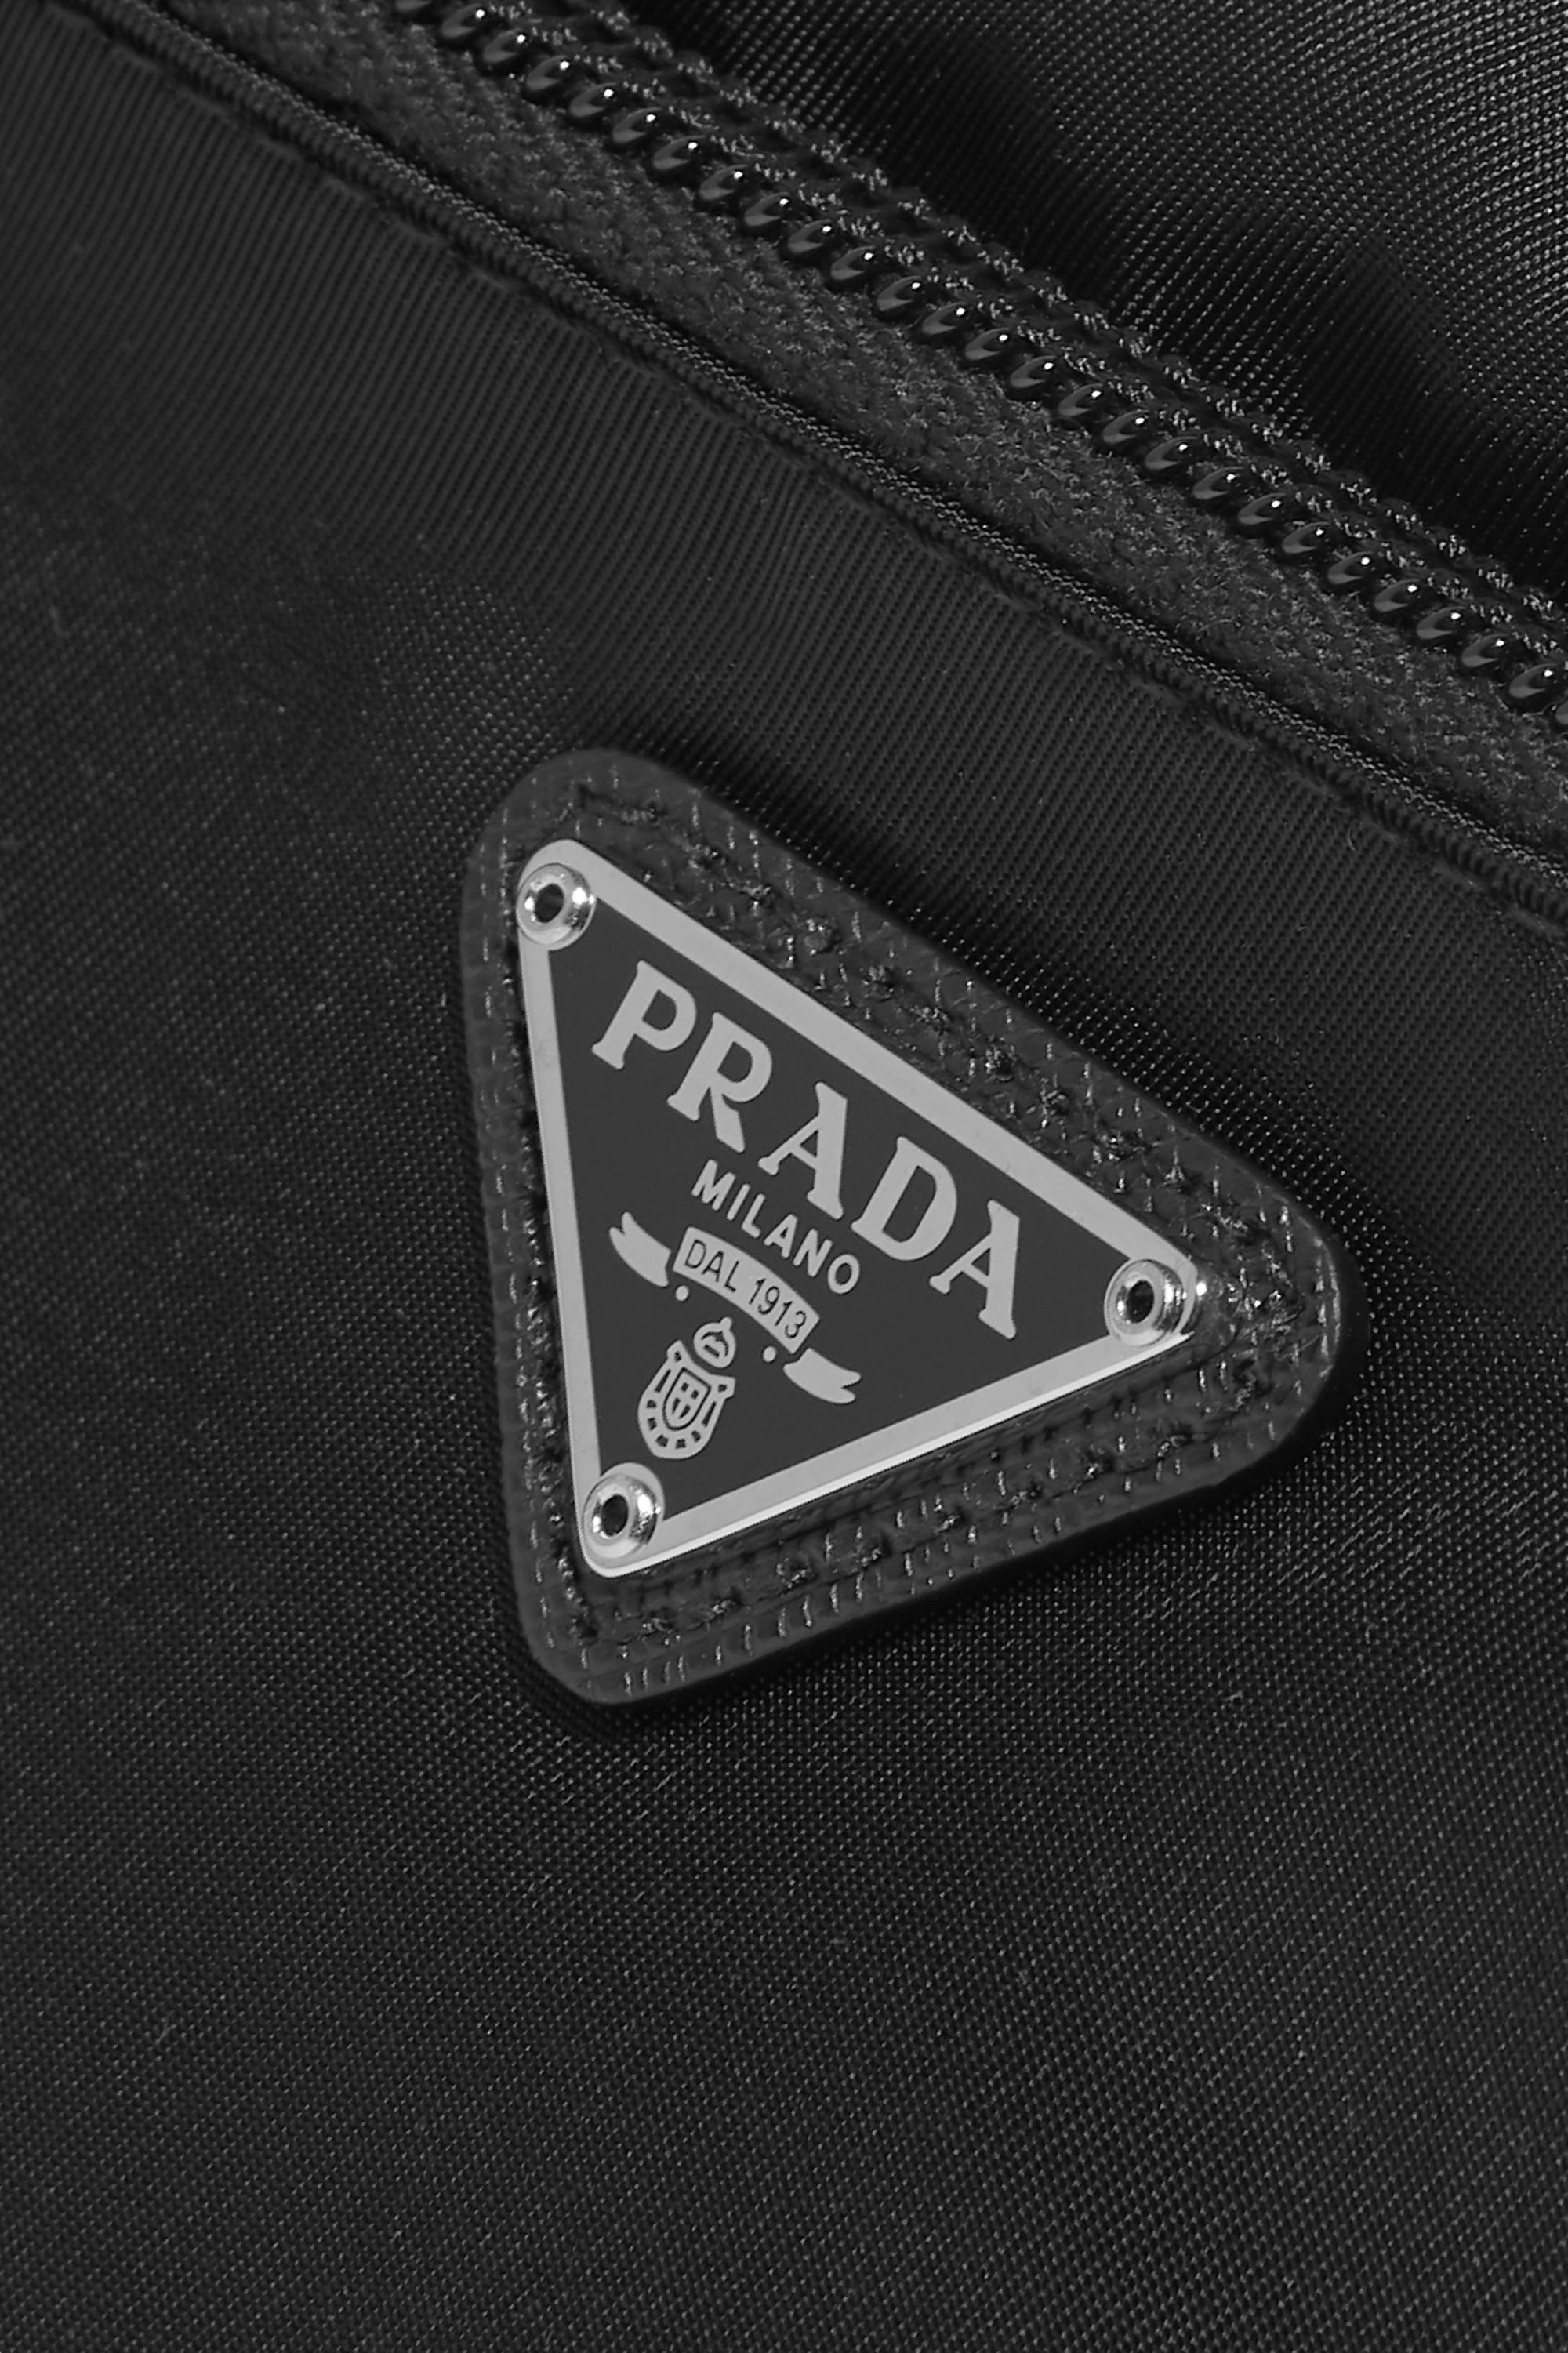 Prada Leather-trimmed shell cosmetics case